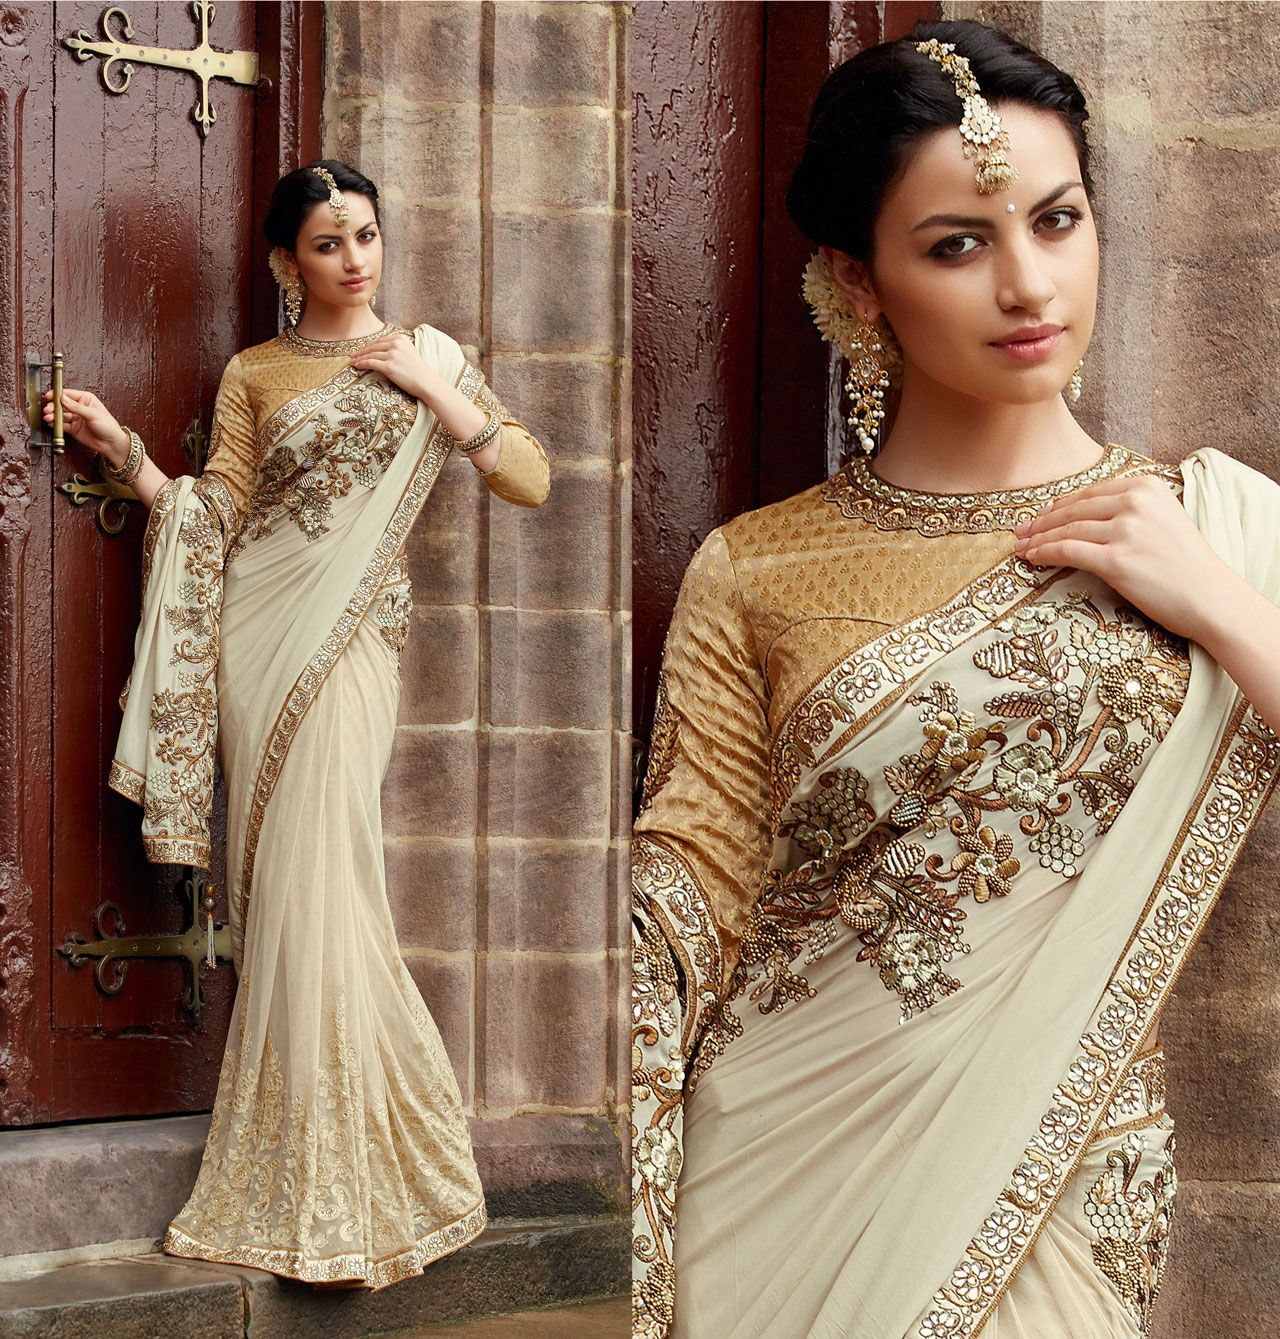 Wedding White Sarees Online: Off White Net Floral Patch Work Wedding Saree 40313